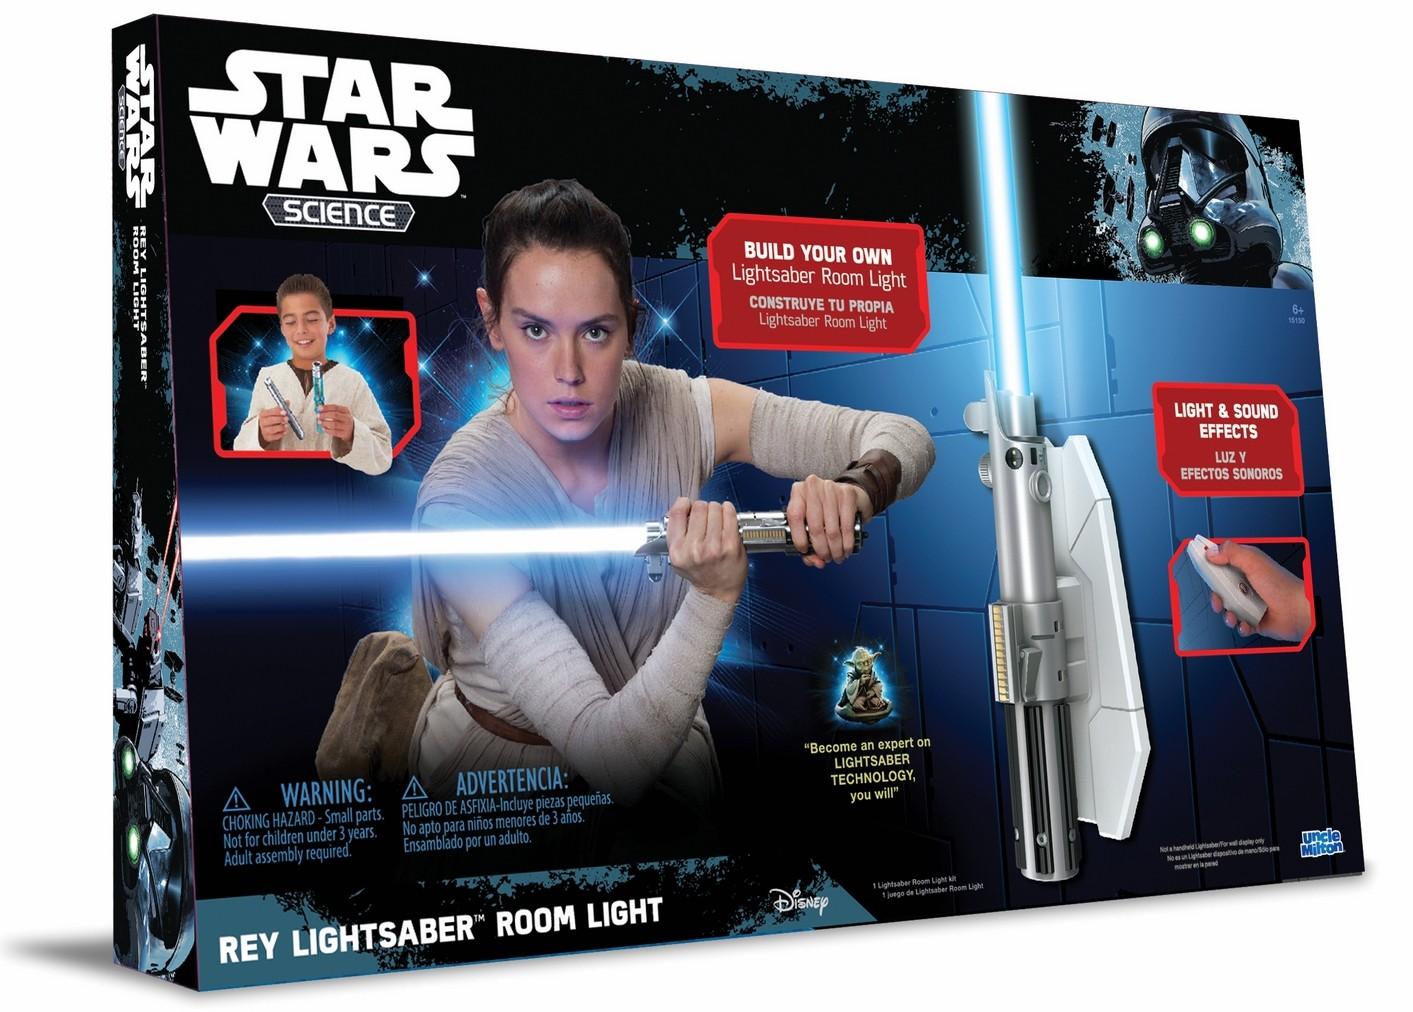 Brand New Star Wars Science Items Coming This Fall